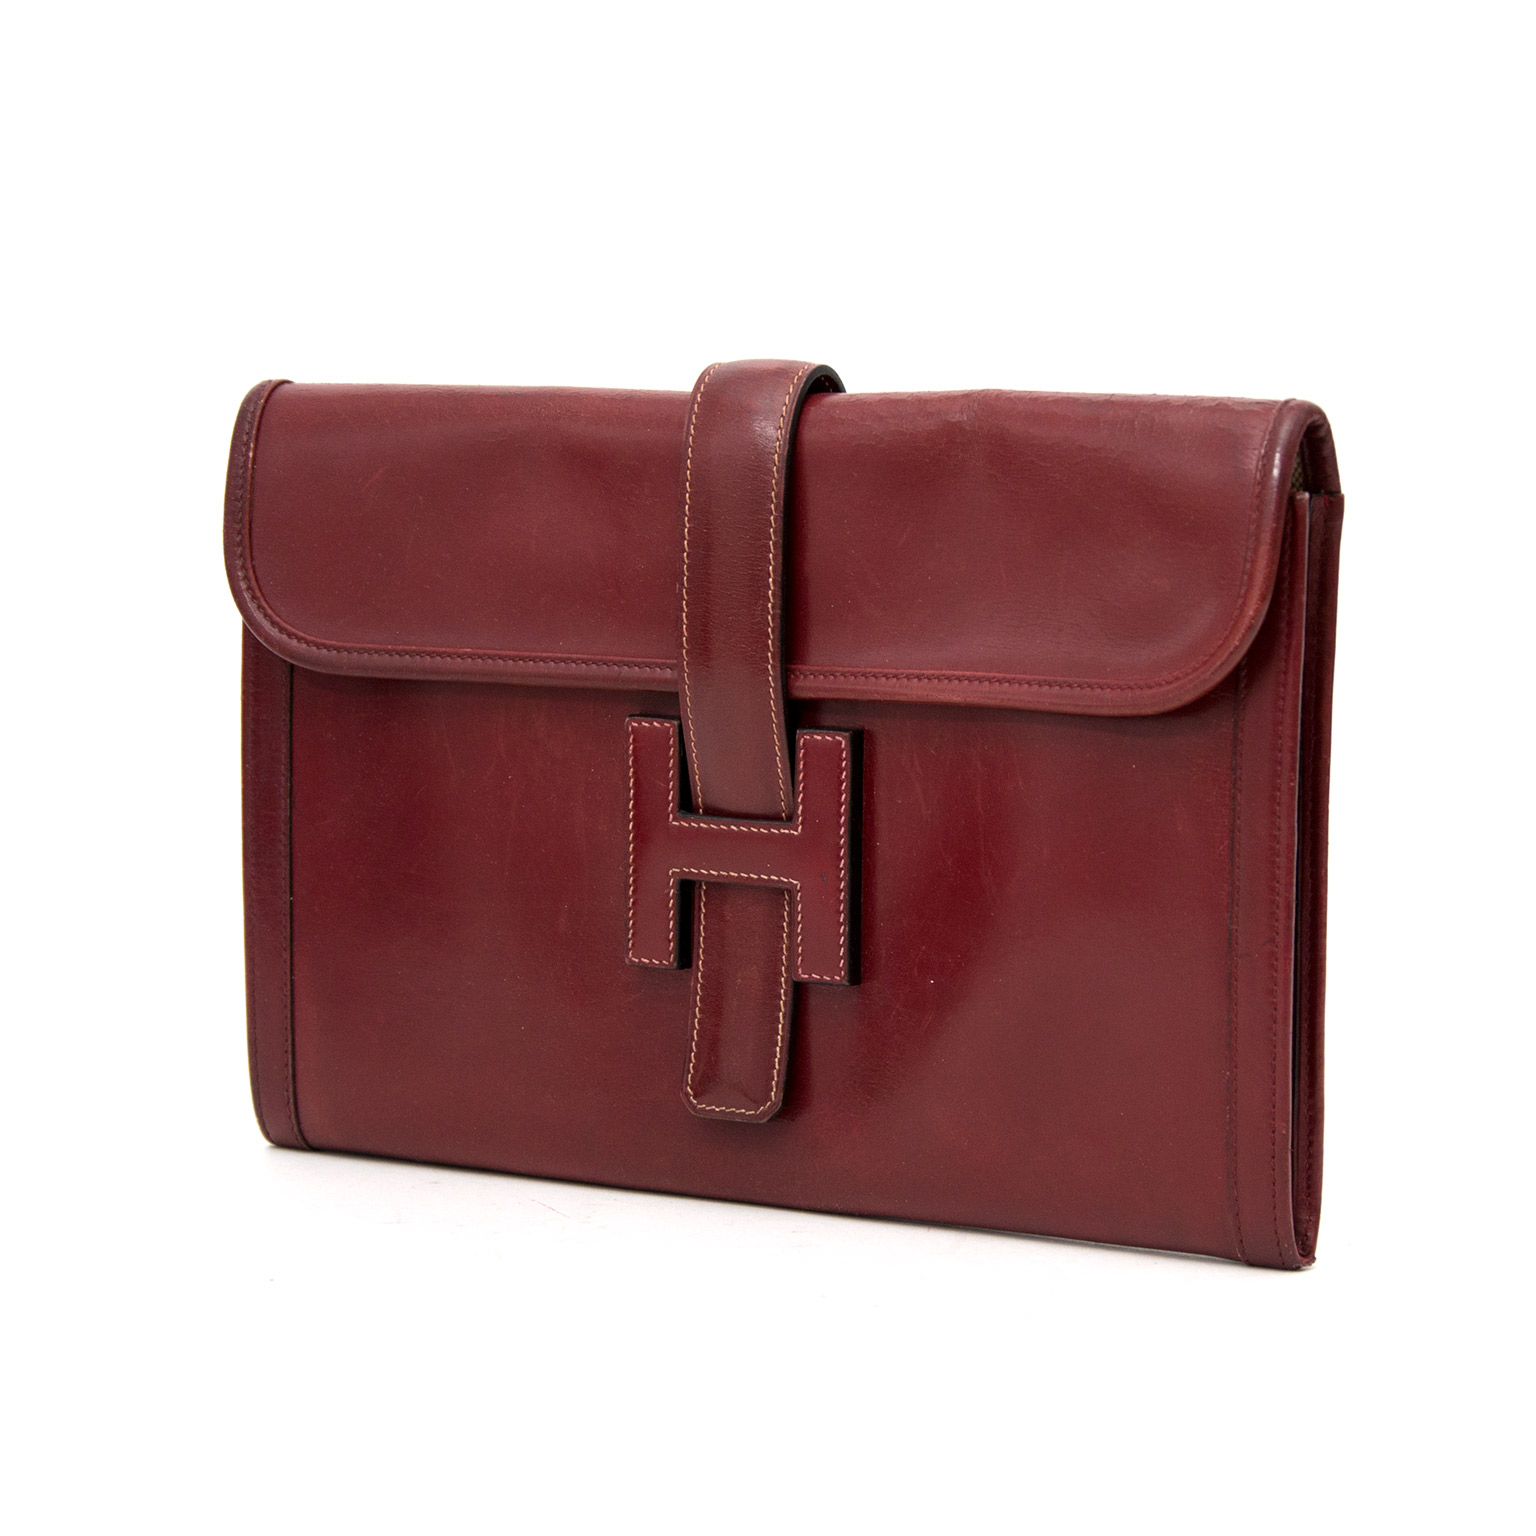 Hermes Bordeaux Jige clutch for the best price available online at Labellov